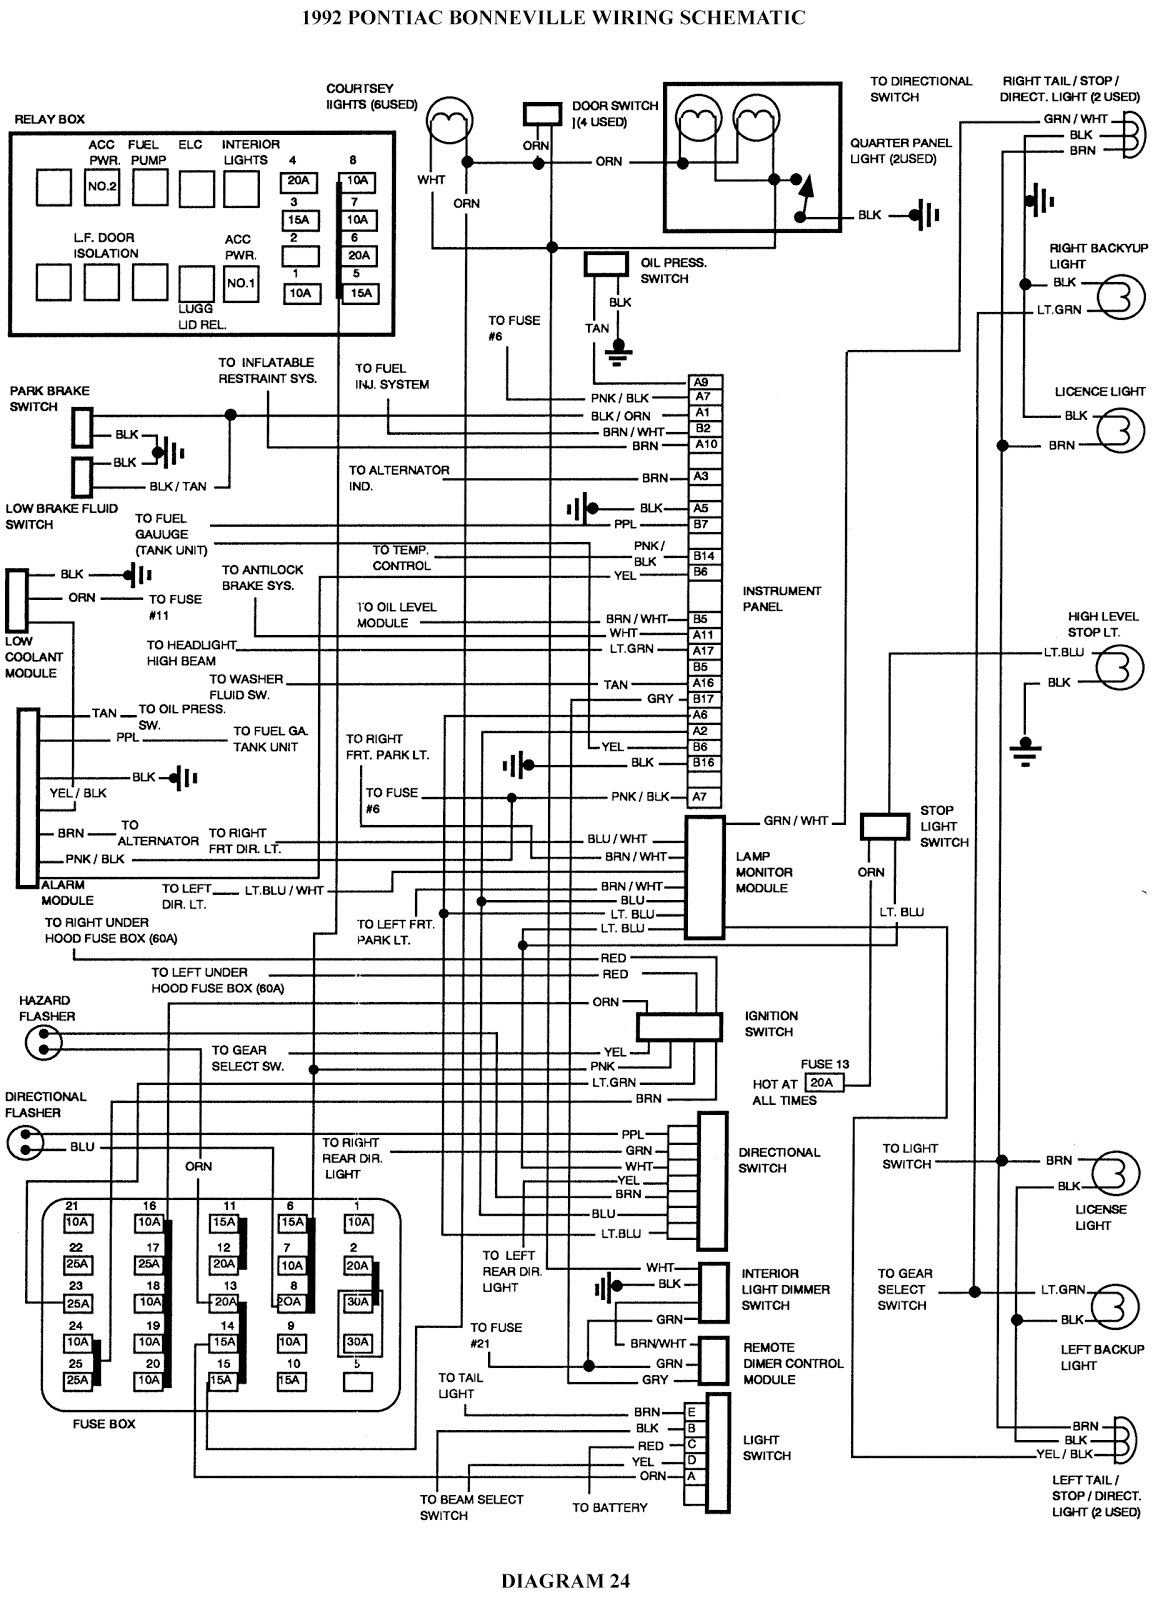 plug wires 99 sunfire wiring schematic